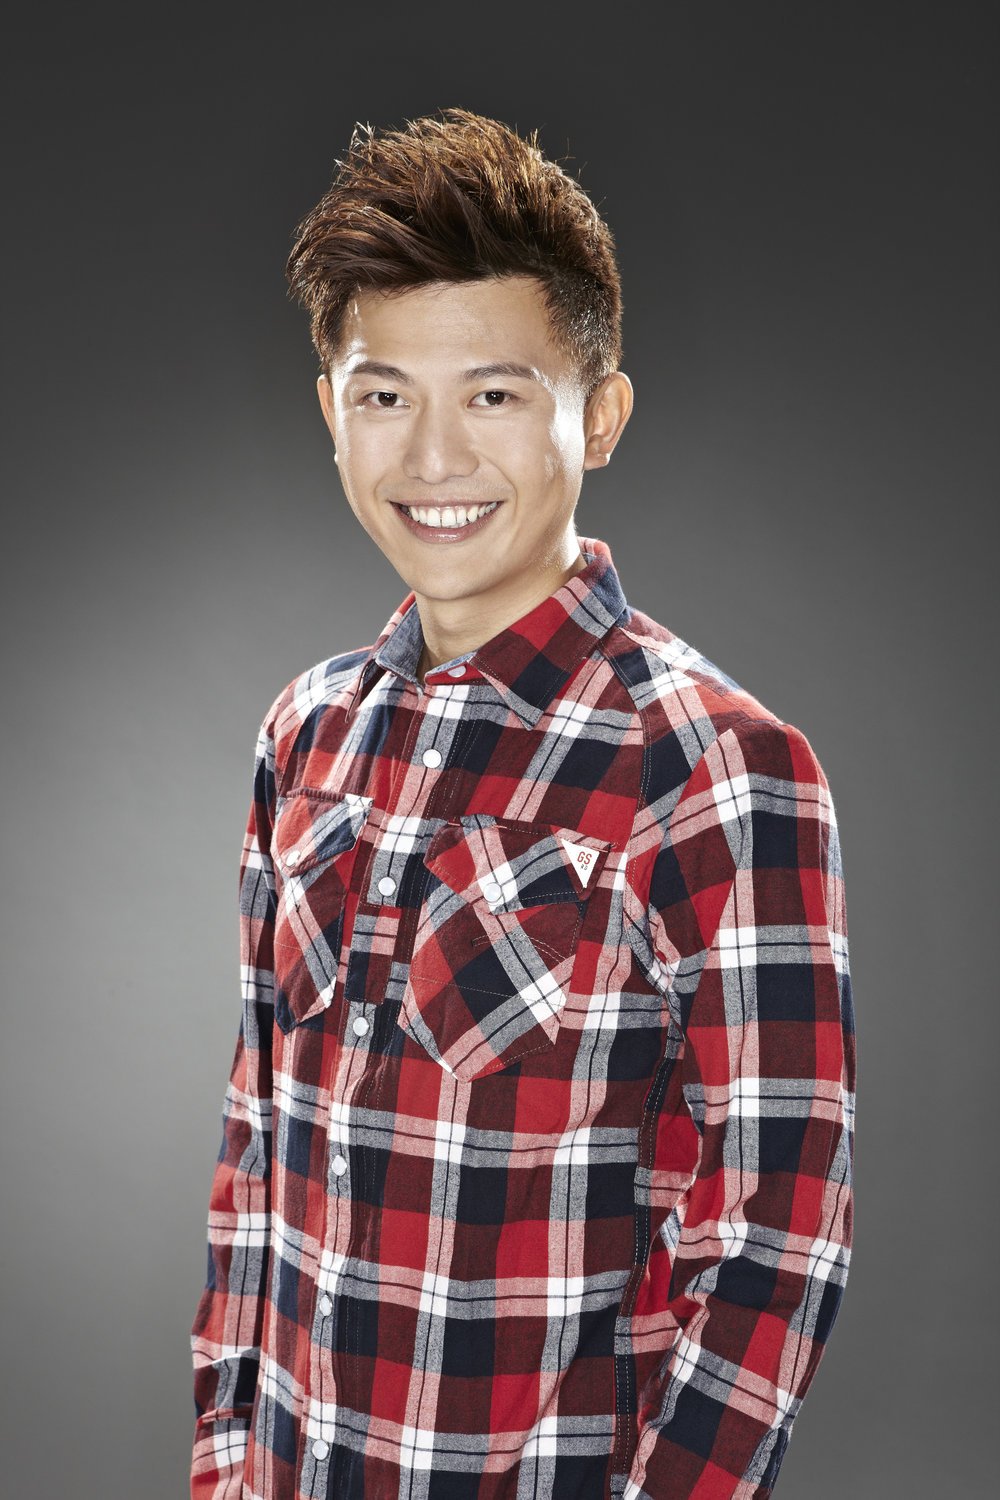 Credit Pornsak (MediaCorp artiste, managed by Left Profile) (2).jpg